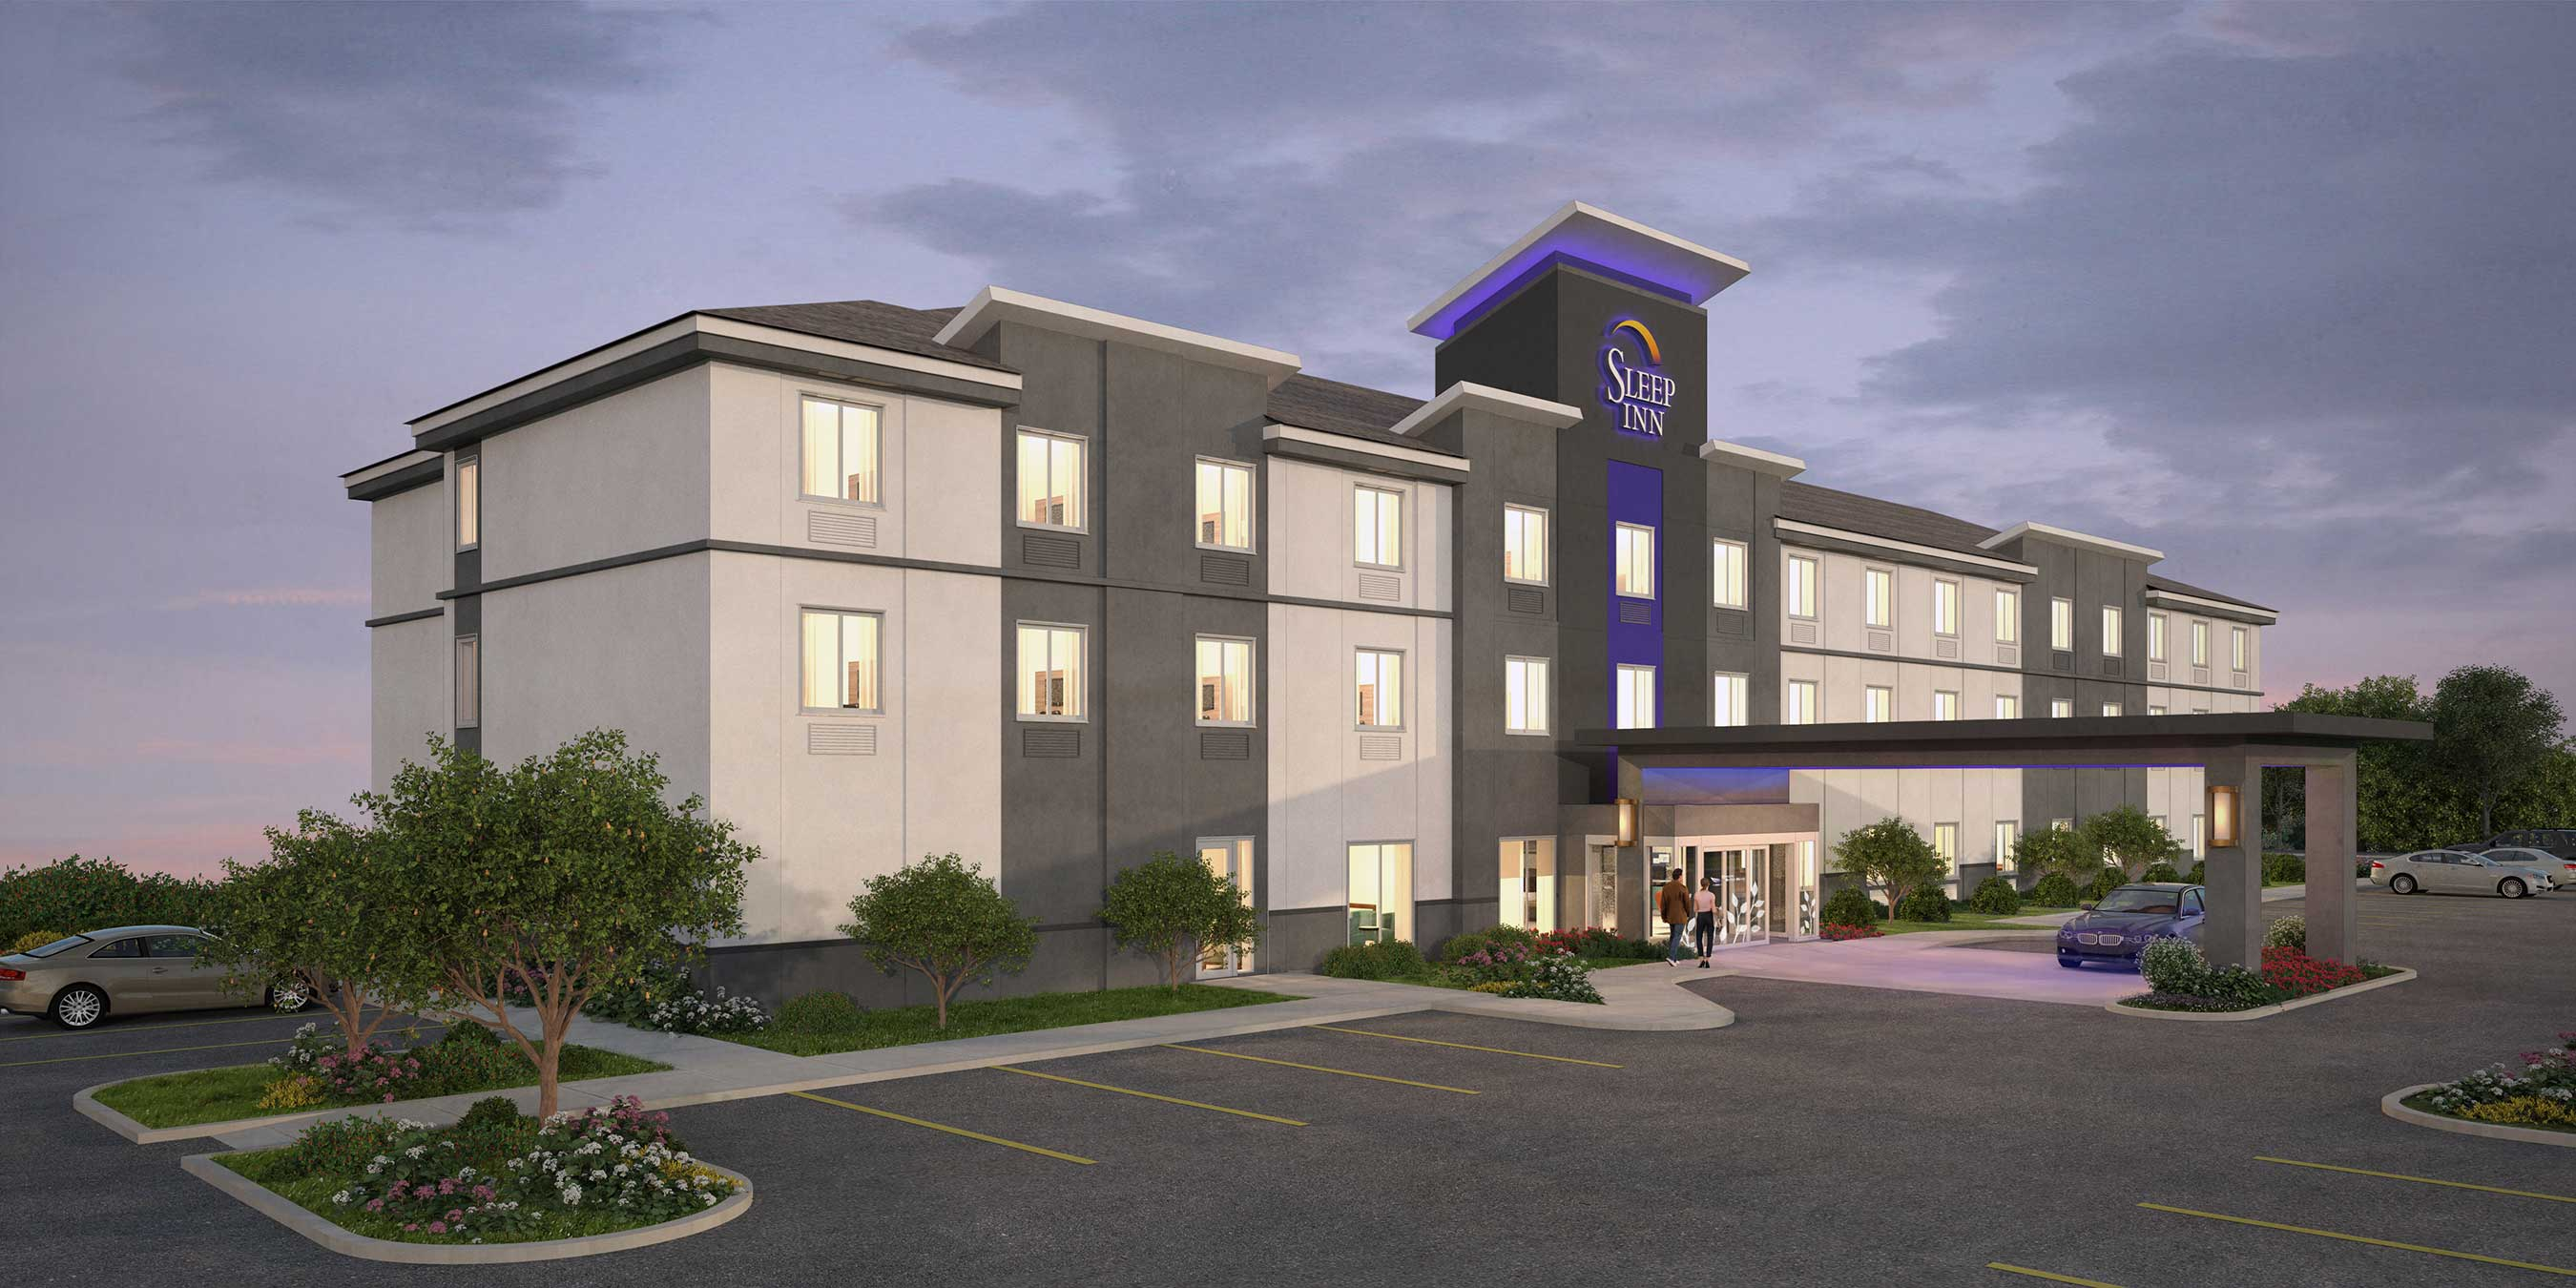 Sleep Inn Brand Unveils Prototype Evolution